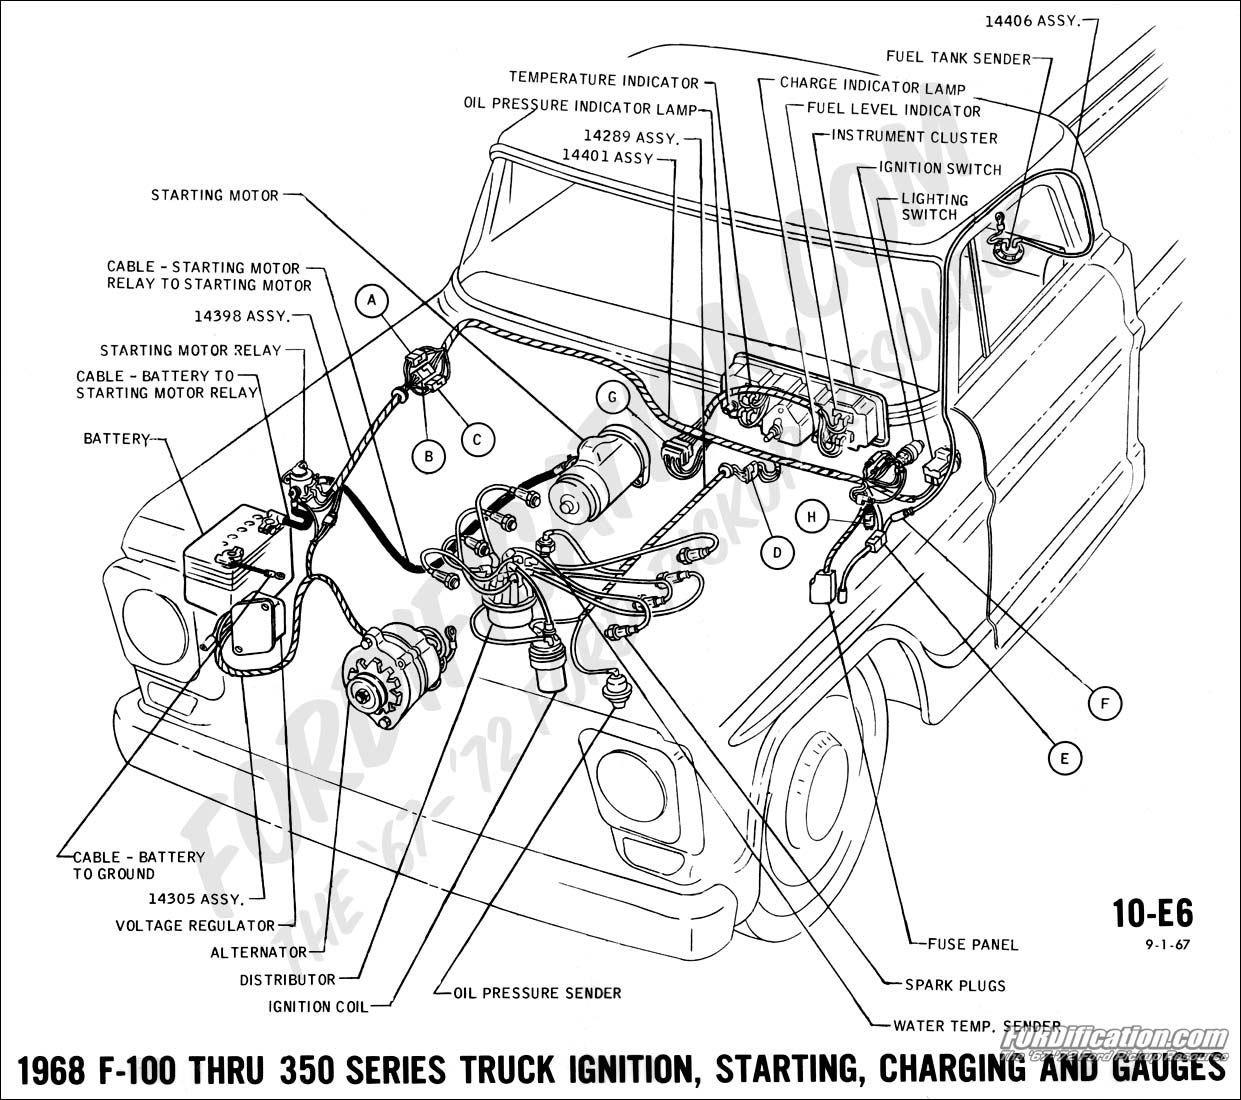 Schematics e also 1981 Ford F 100 Fuse Box Diagram furthermore 2012 Jeep Wrangler Fuse Box as well 1995 Ford Explorer Engine Diagram 6b12b4fab636b628 further Ford F150 Lariat Fuse Panel Diagram Cigar Cigarette Lighter. on 1998 ford f 150 relay fuse